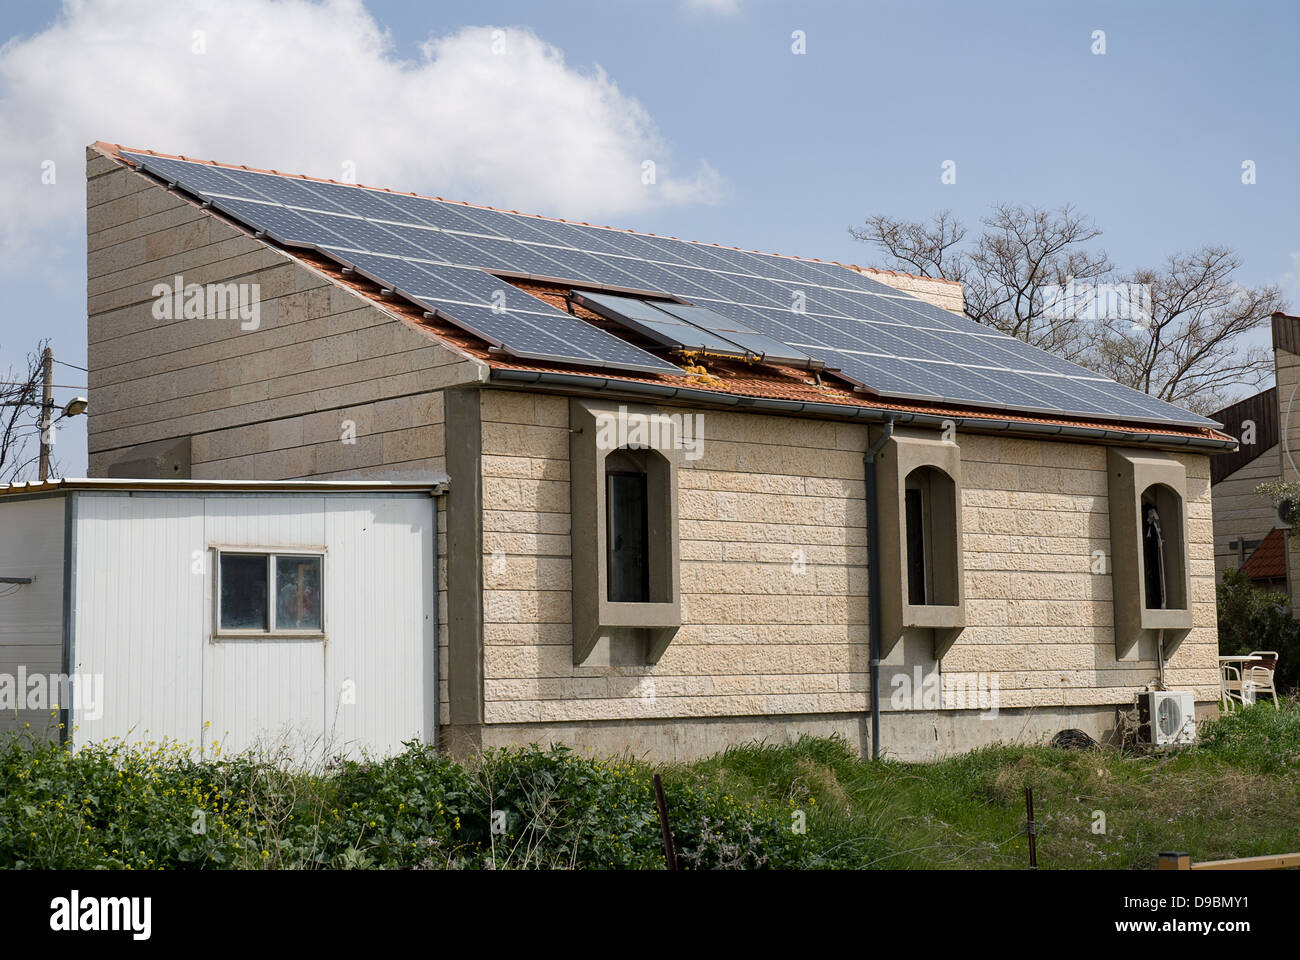 Solar panels for hot water and electricity provision in houses of ...